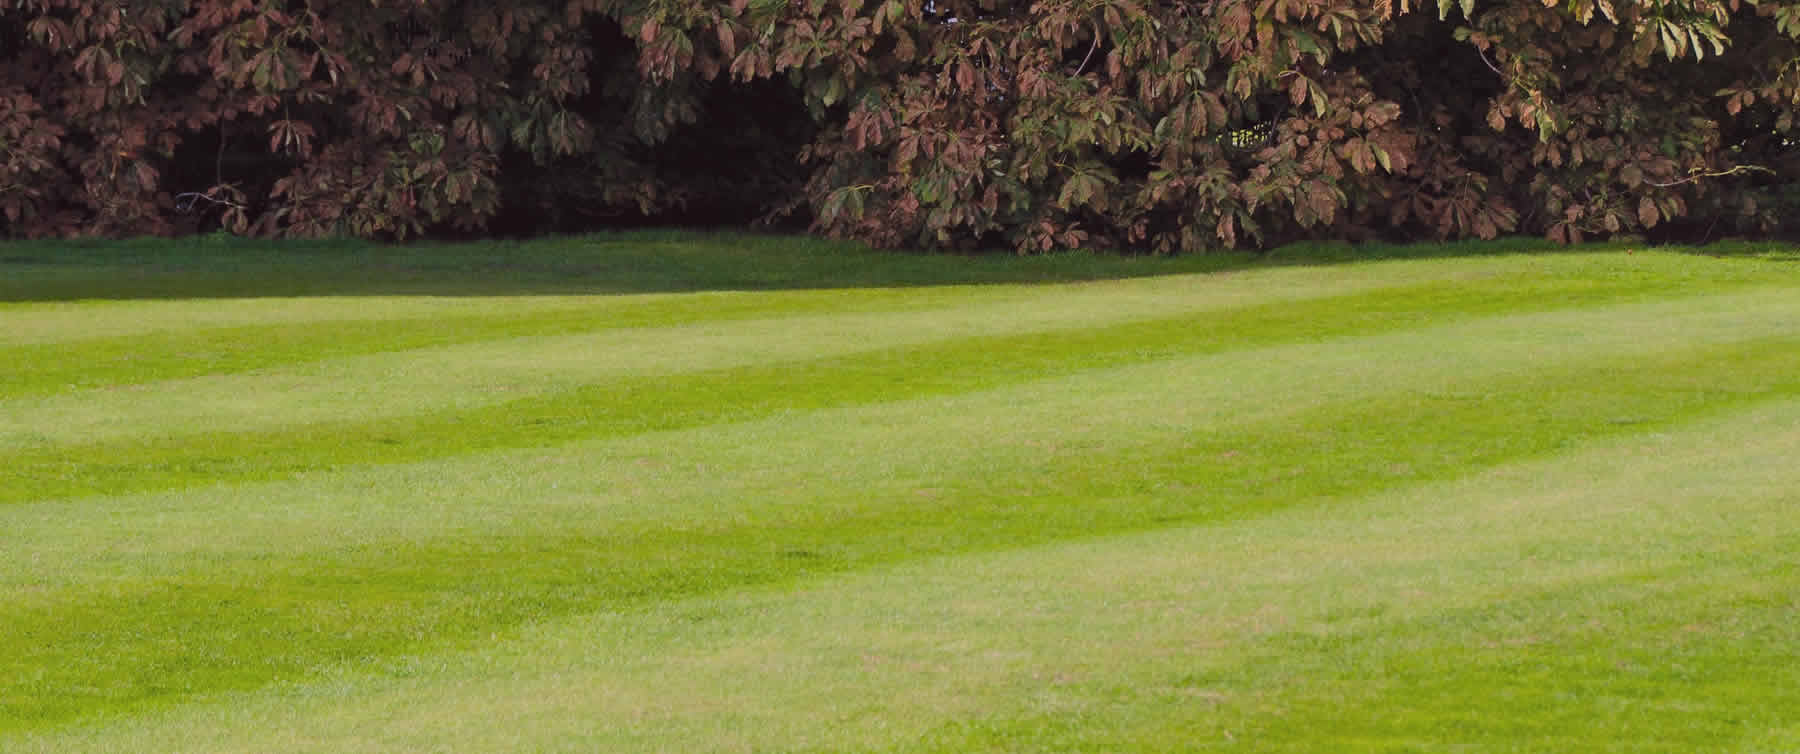 Lawn mowing services in Detroit Lakes, Minnesota.